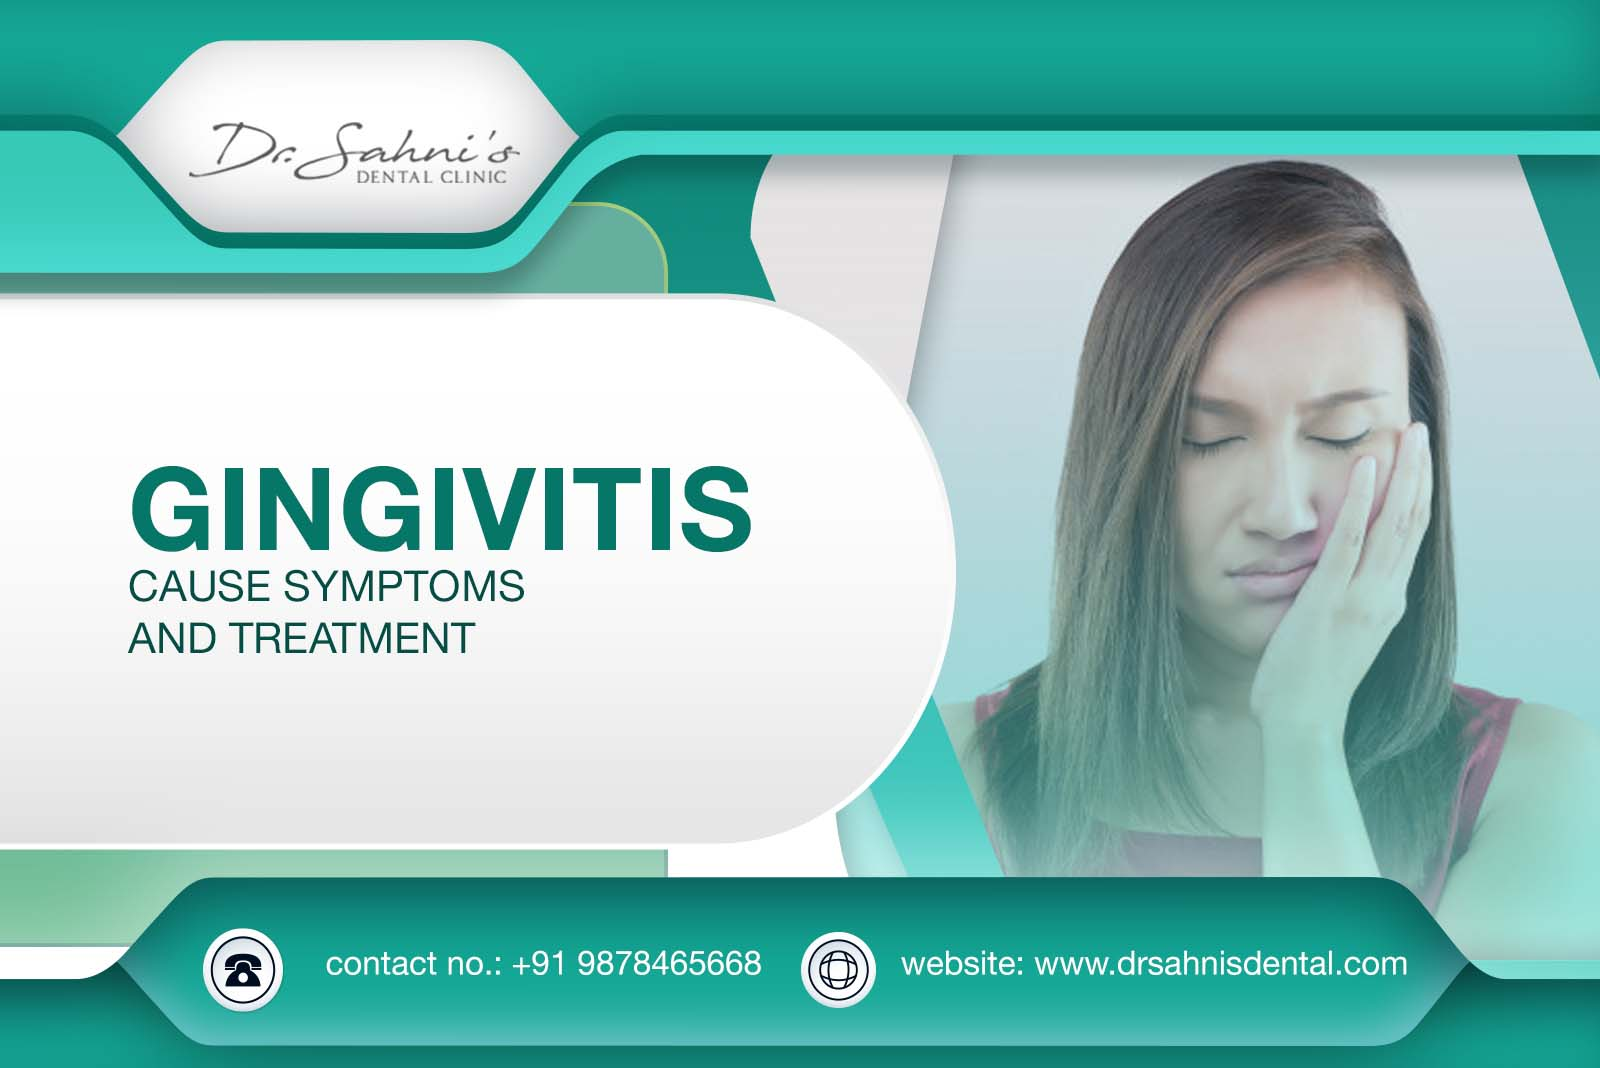 Cause, Symptoms and Treatment of Gingivitis